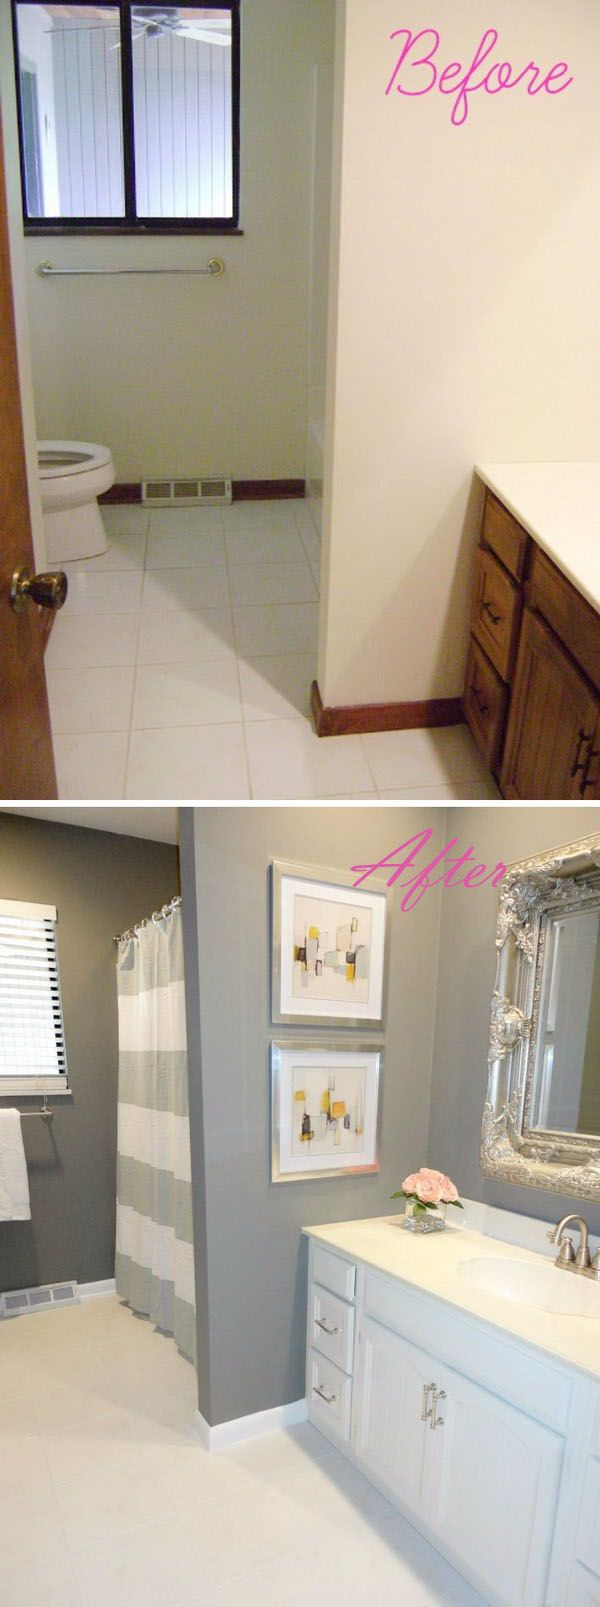 Small Bathroom Remodeling Ideas Do Yourself best 25+ bathroom remodeling ideas on pinterest | small bathroom